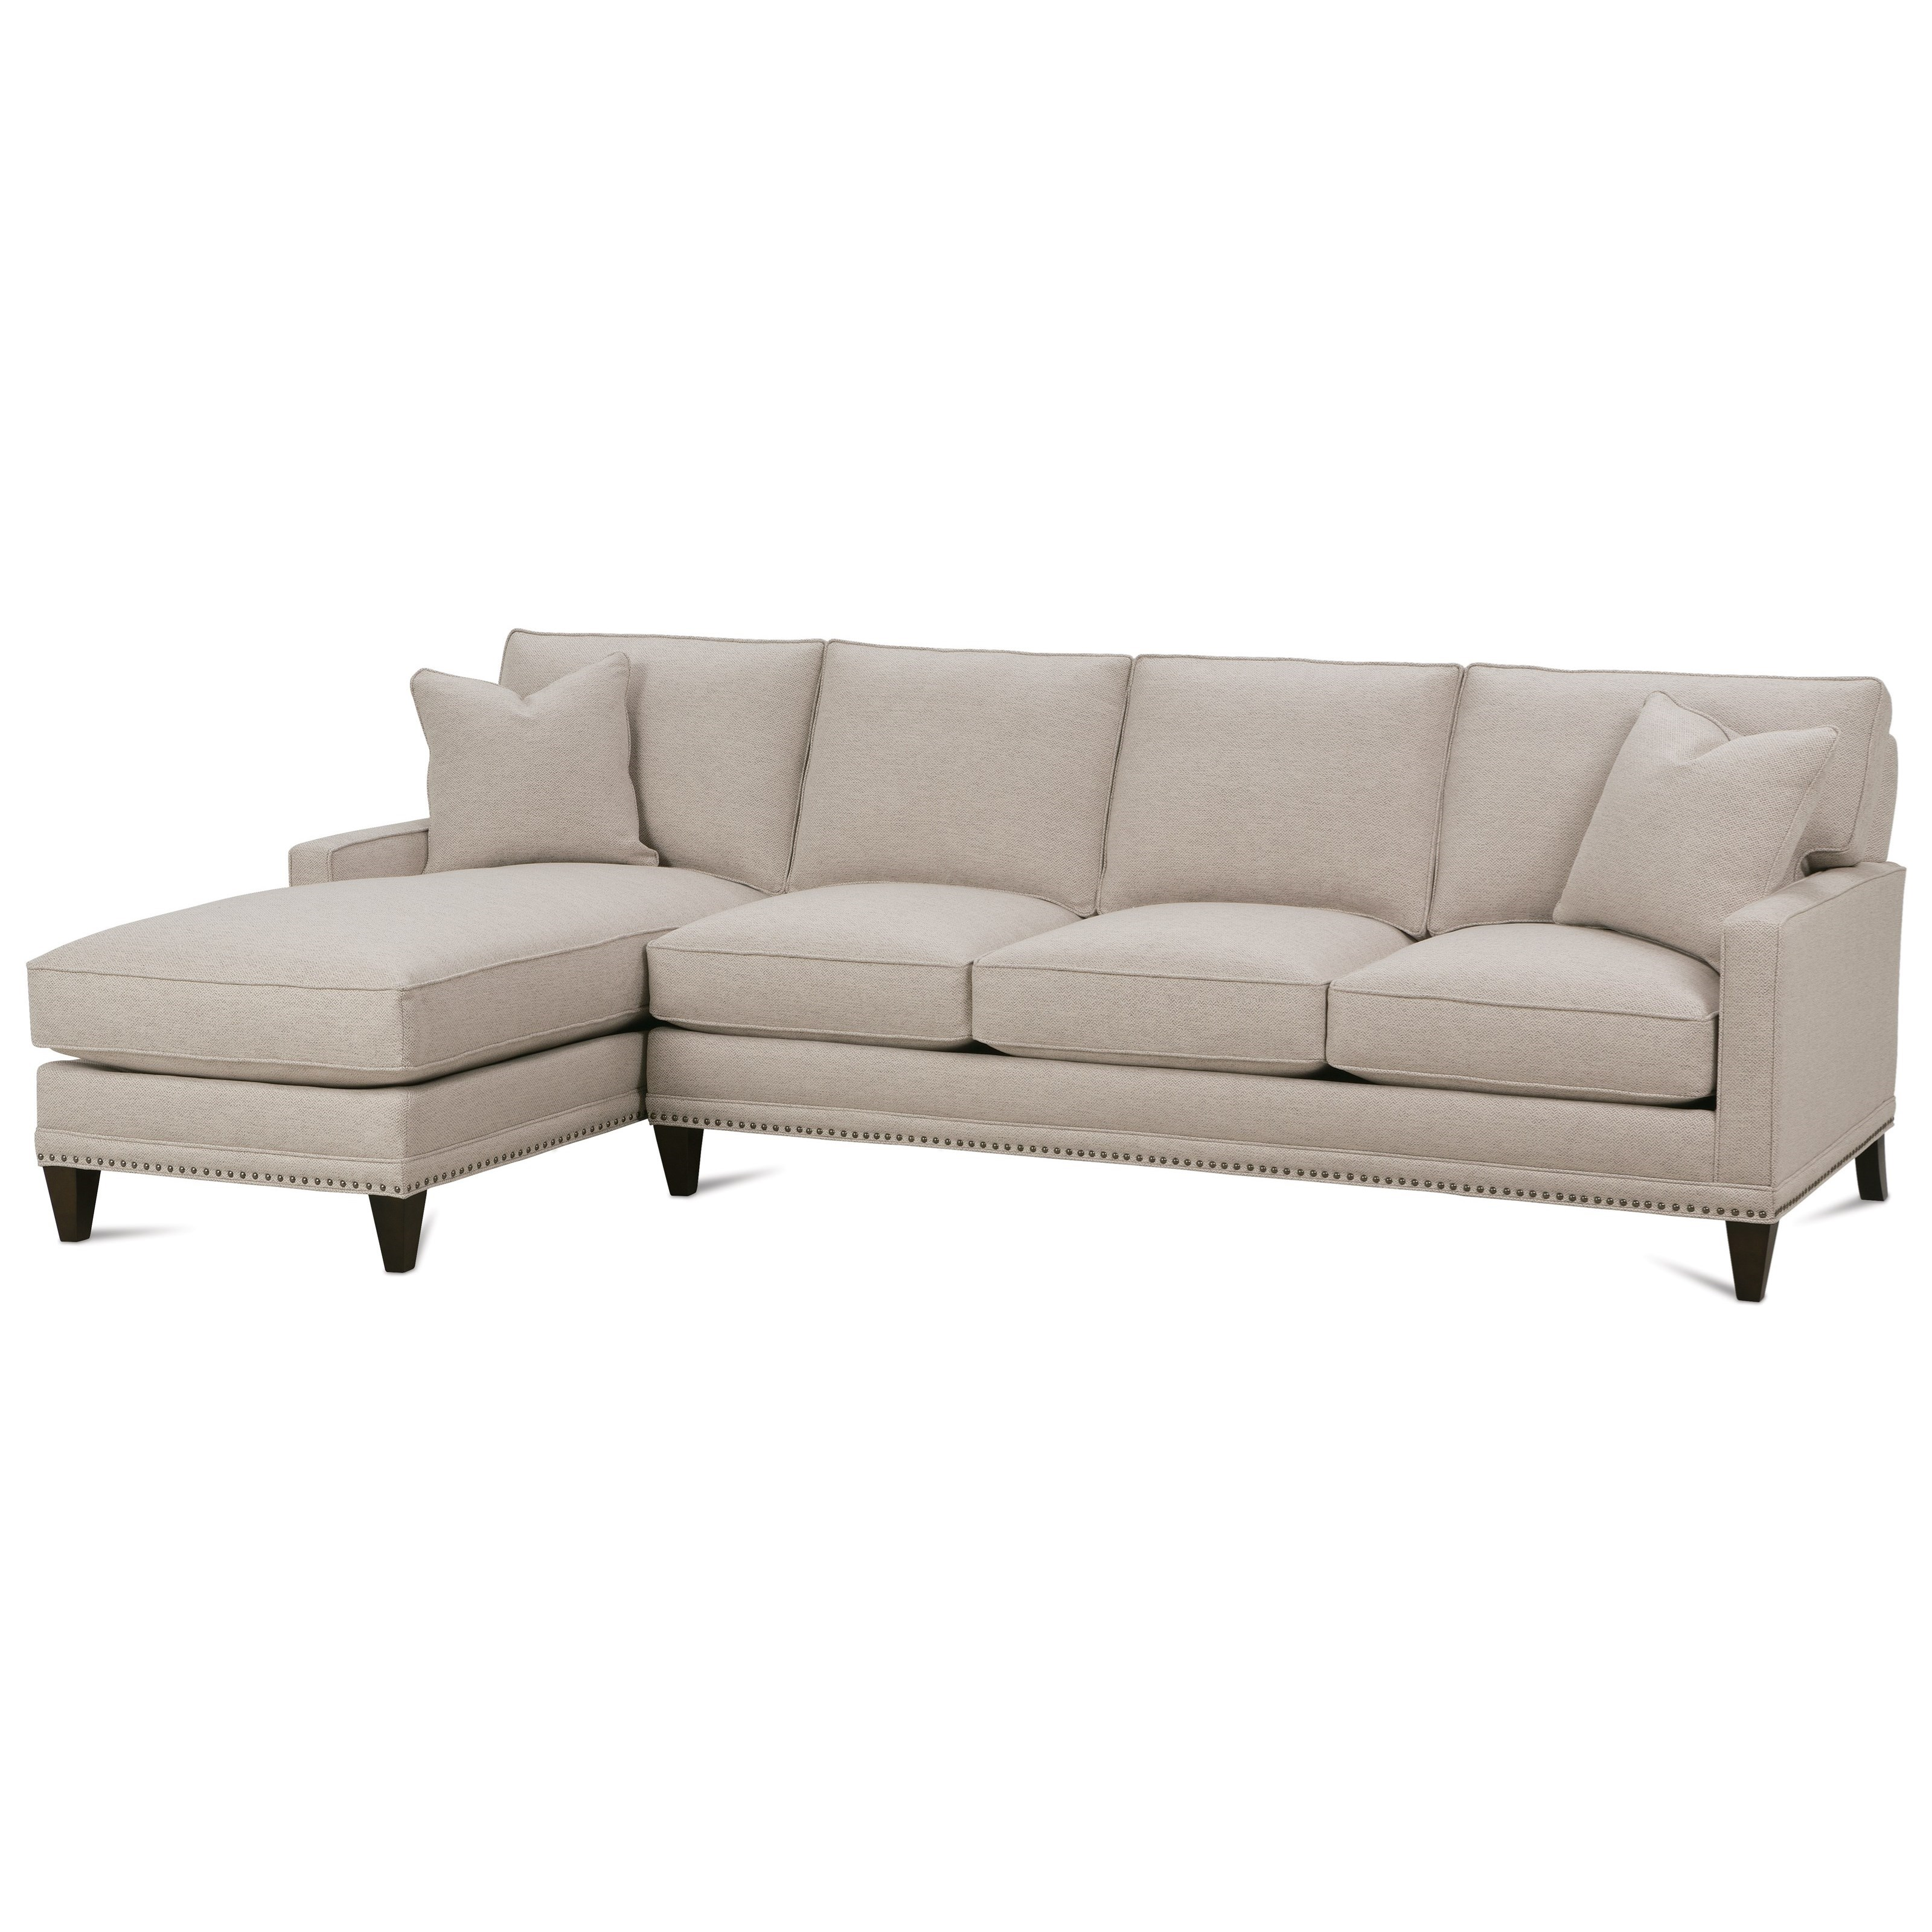 My Style II Customizable Sofa with Left Seated Chaise by Rowe at Baer's Furniture